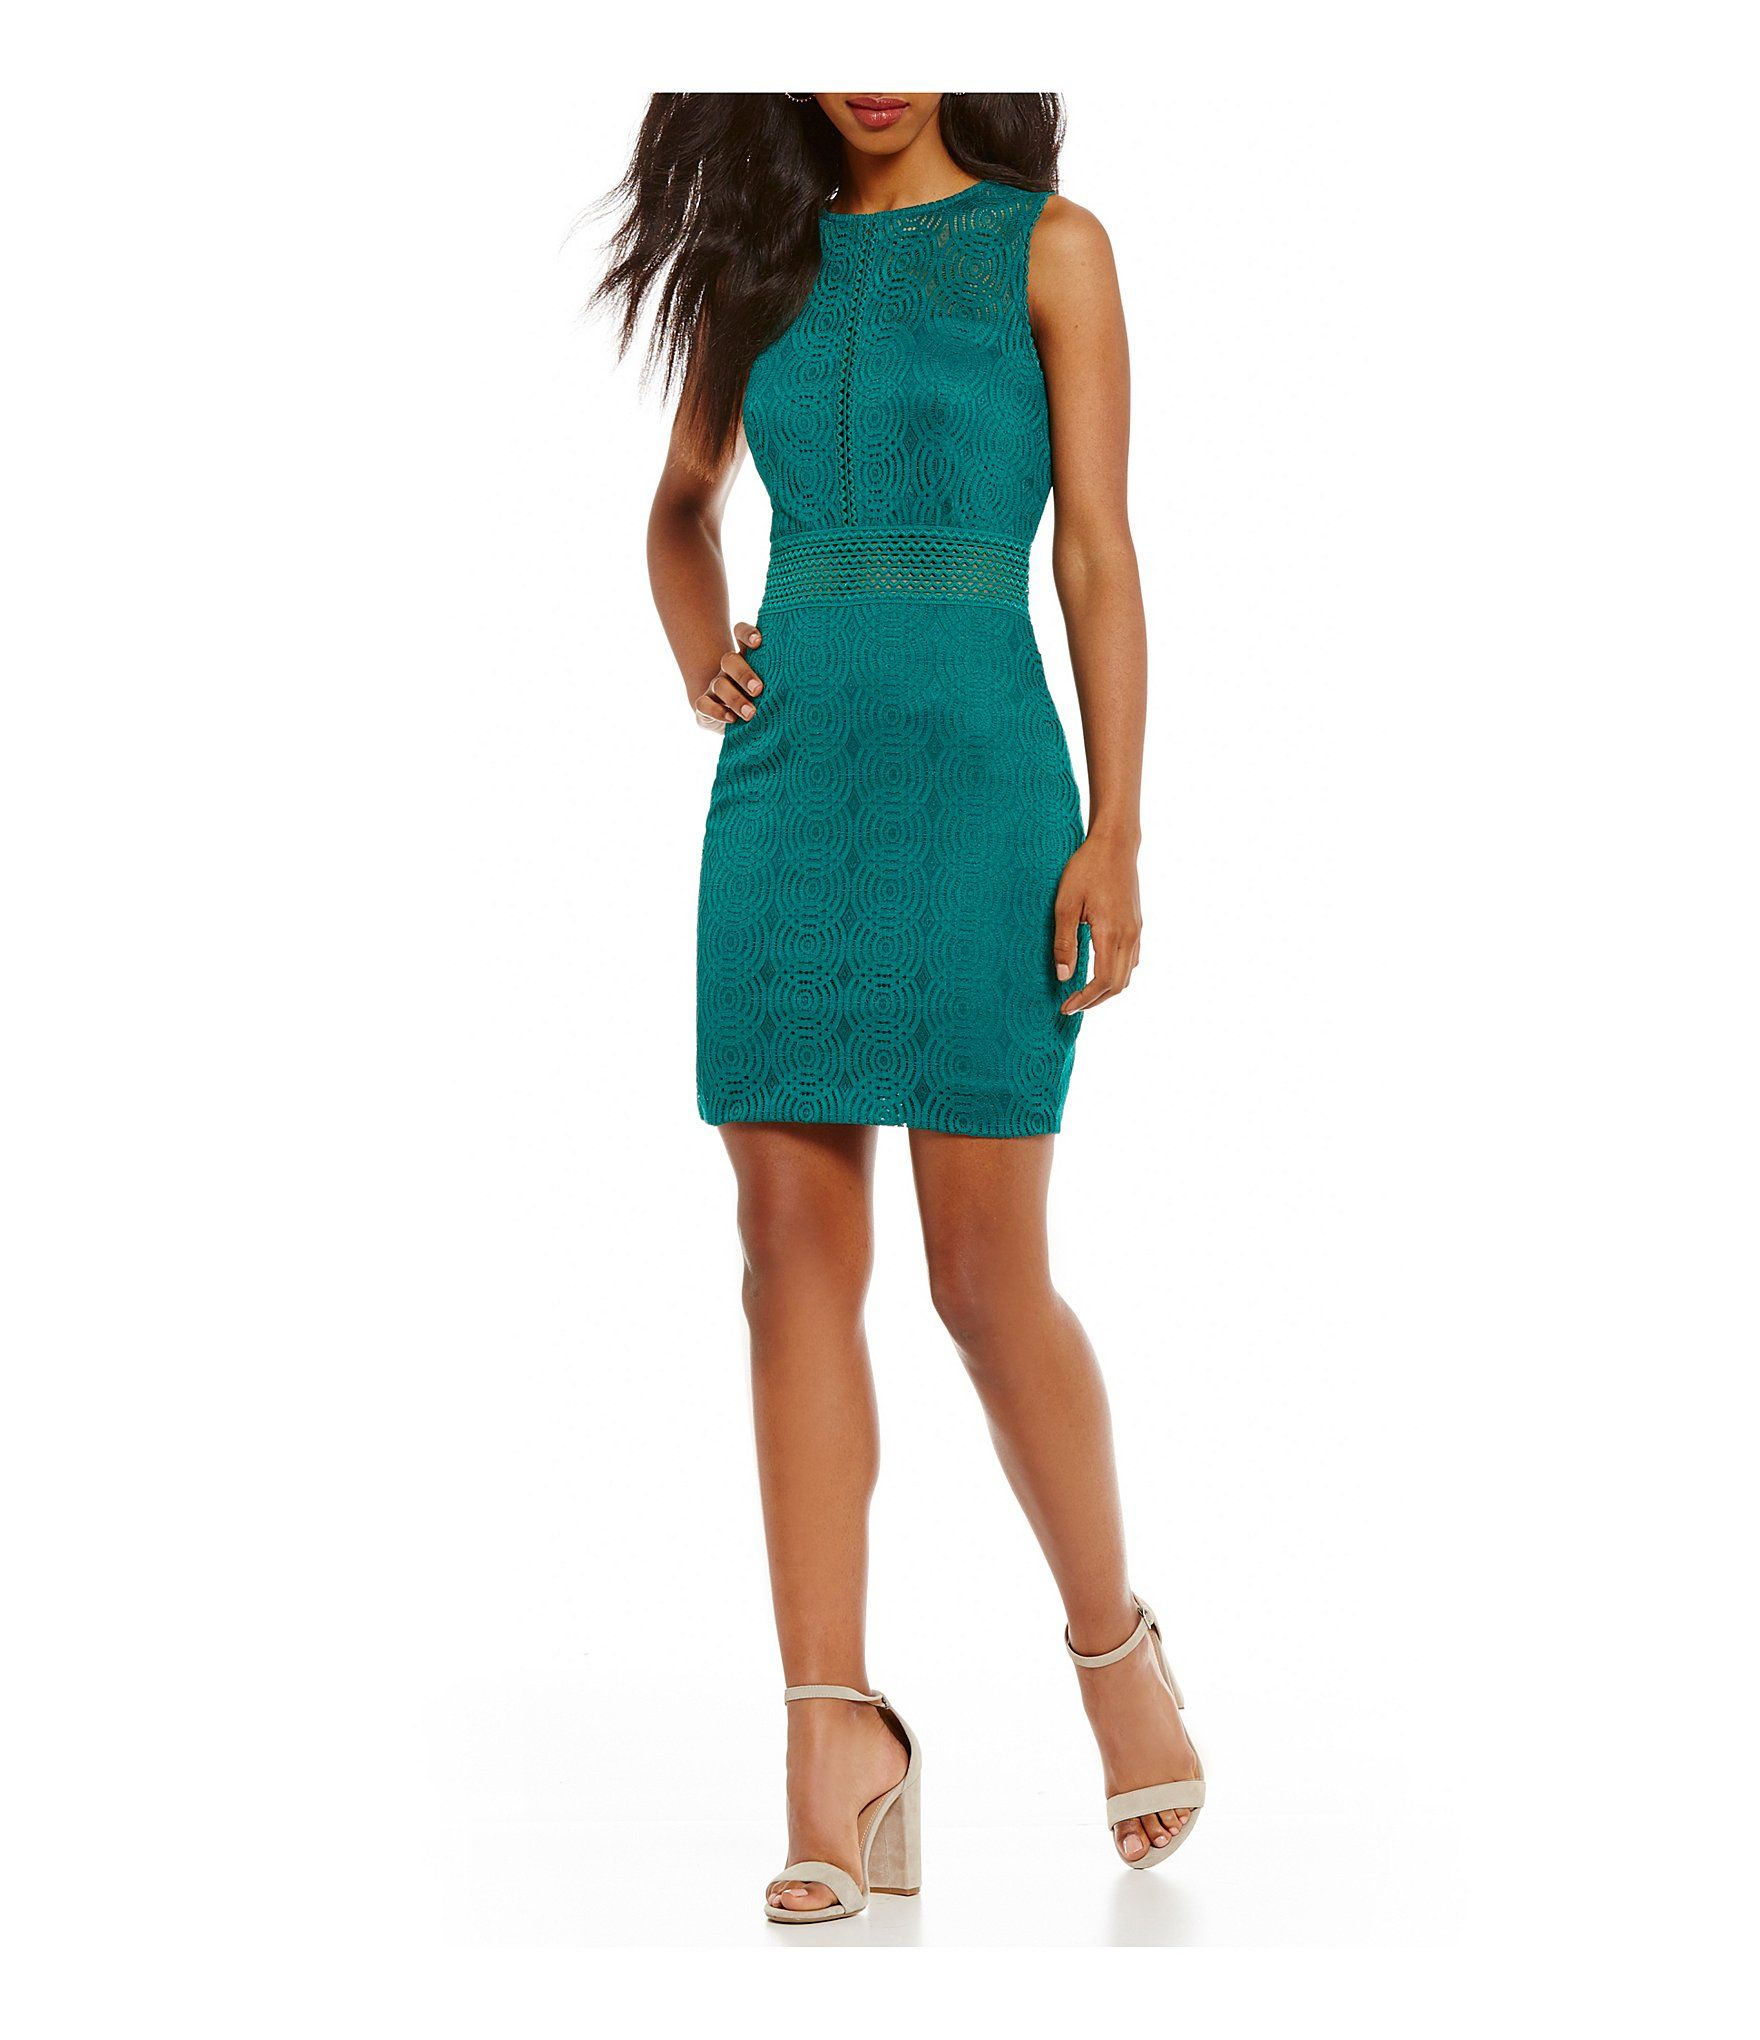 Jodi kristopher circlepattern lace sheath dress lace sheath dress